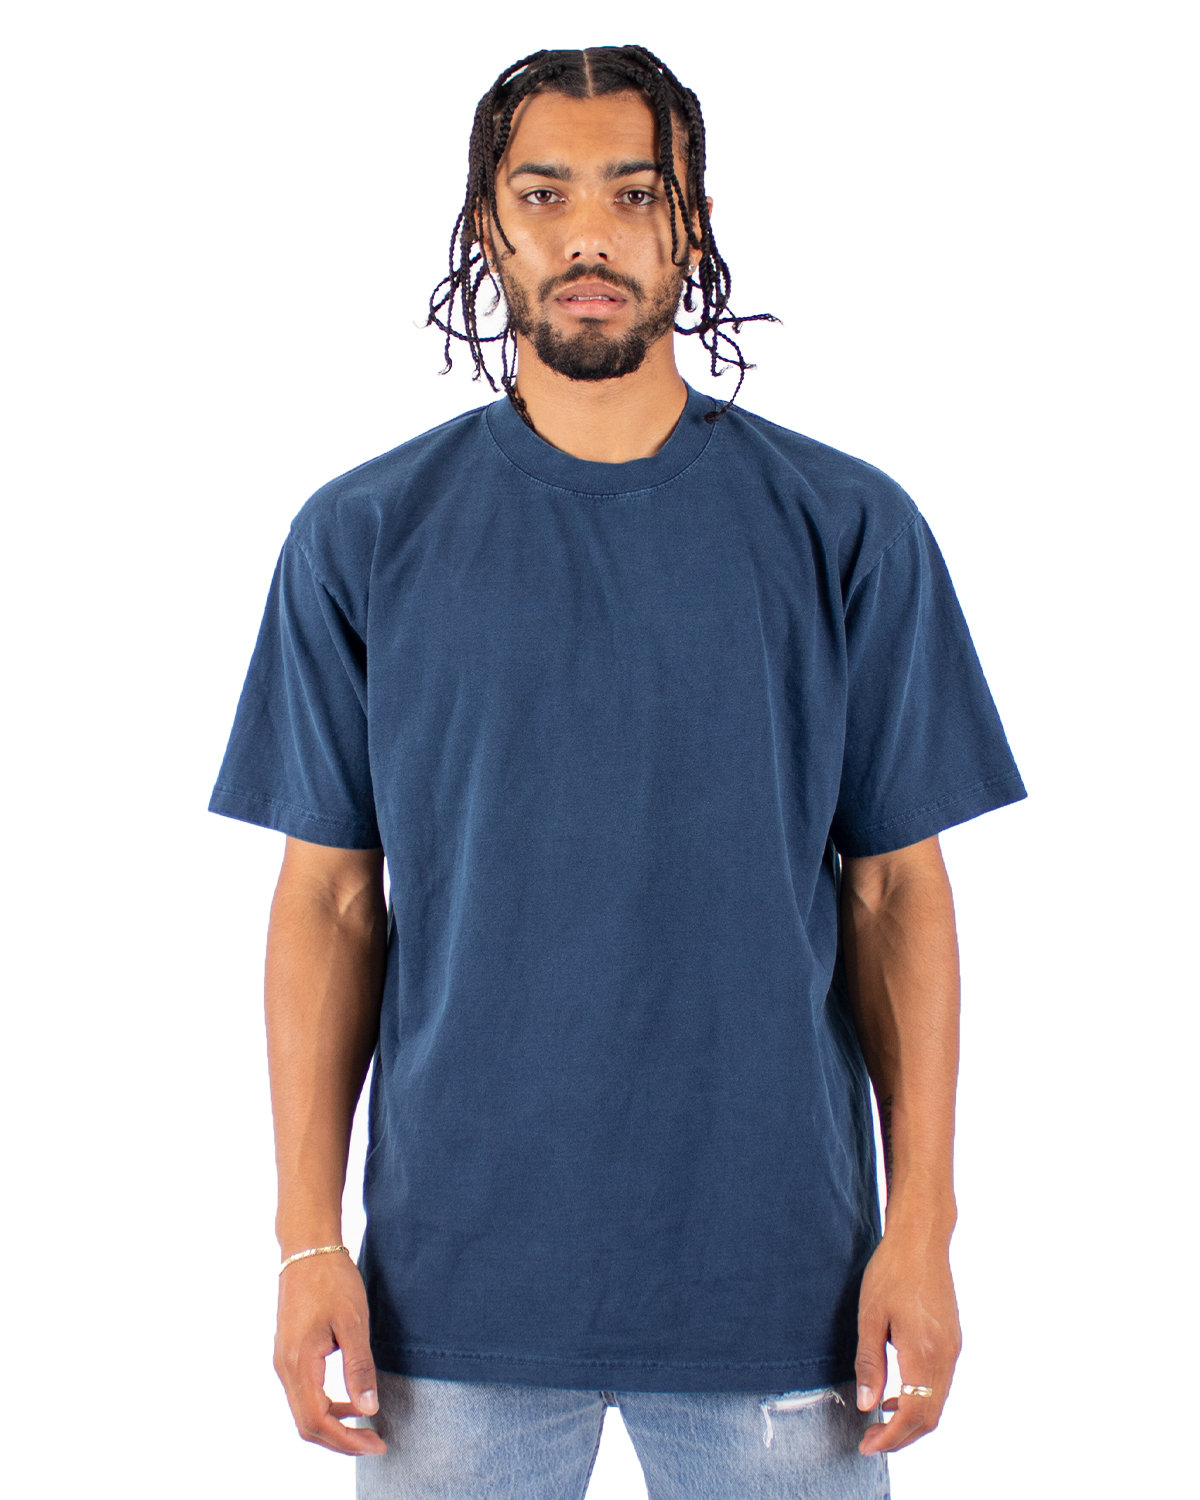 Shaka Wear Drop Ship Garment-Dyed Crewneck T-Shirt MIDNIGHT NAVY